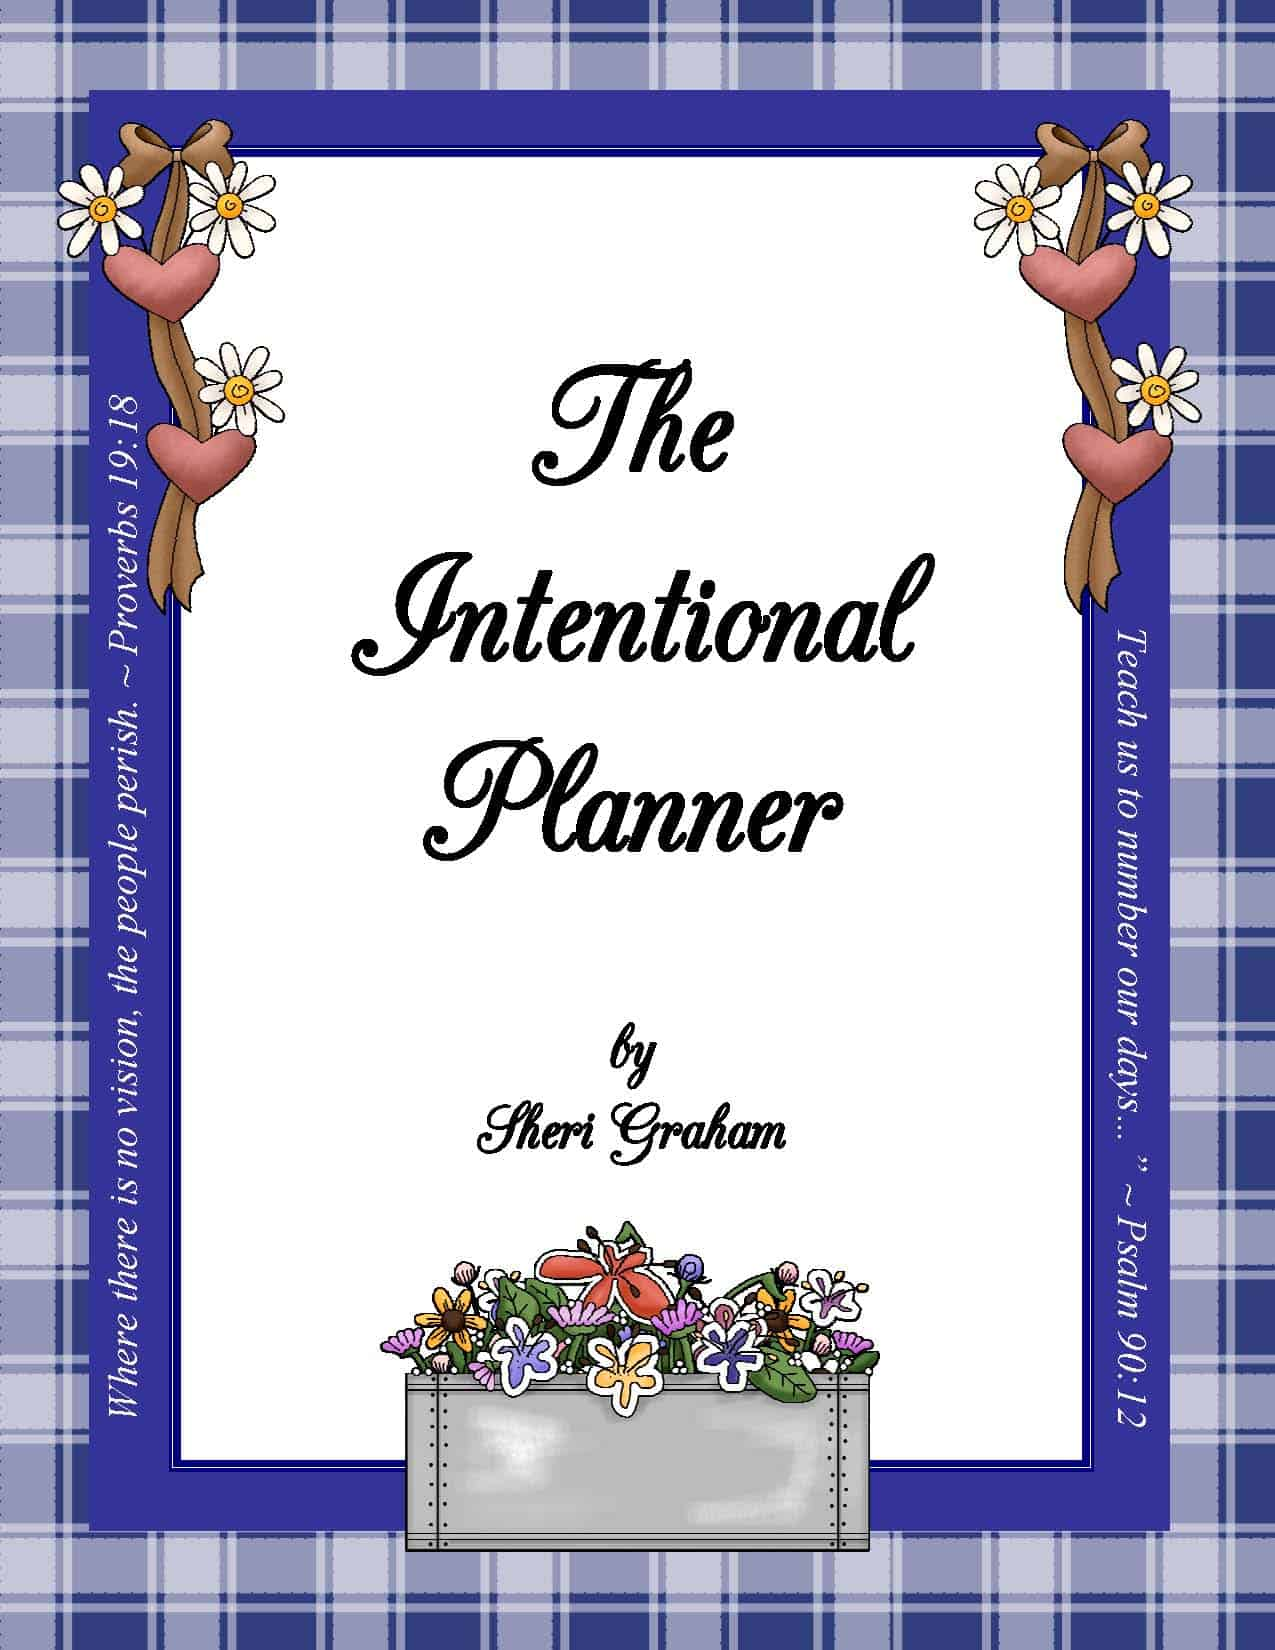 The Intentional Planner - 1-Year Membership